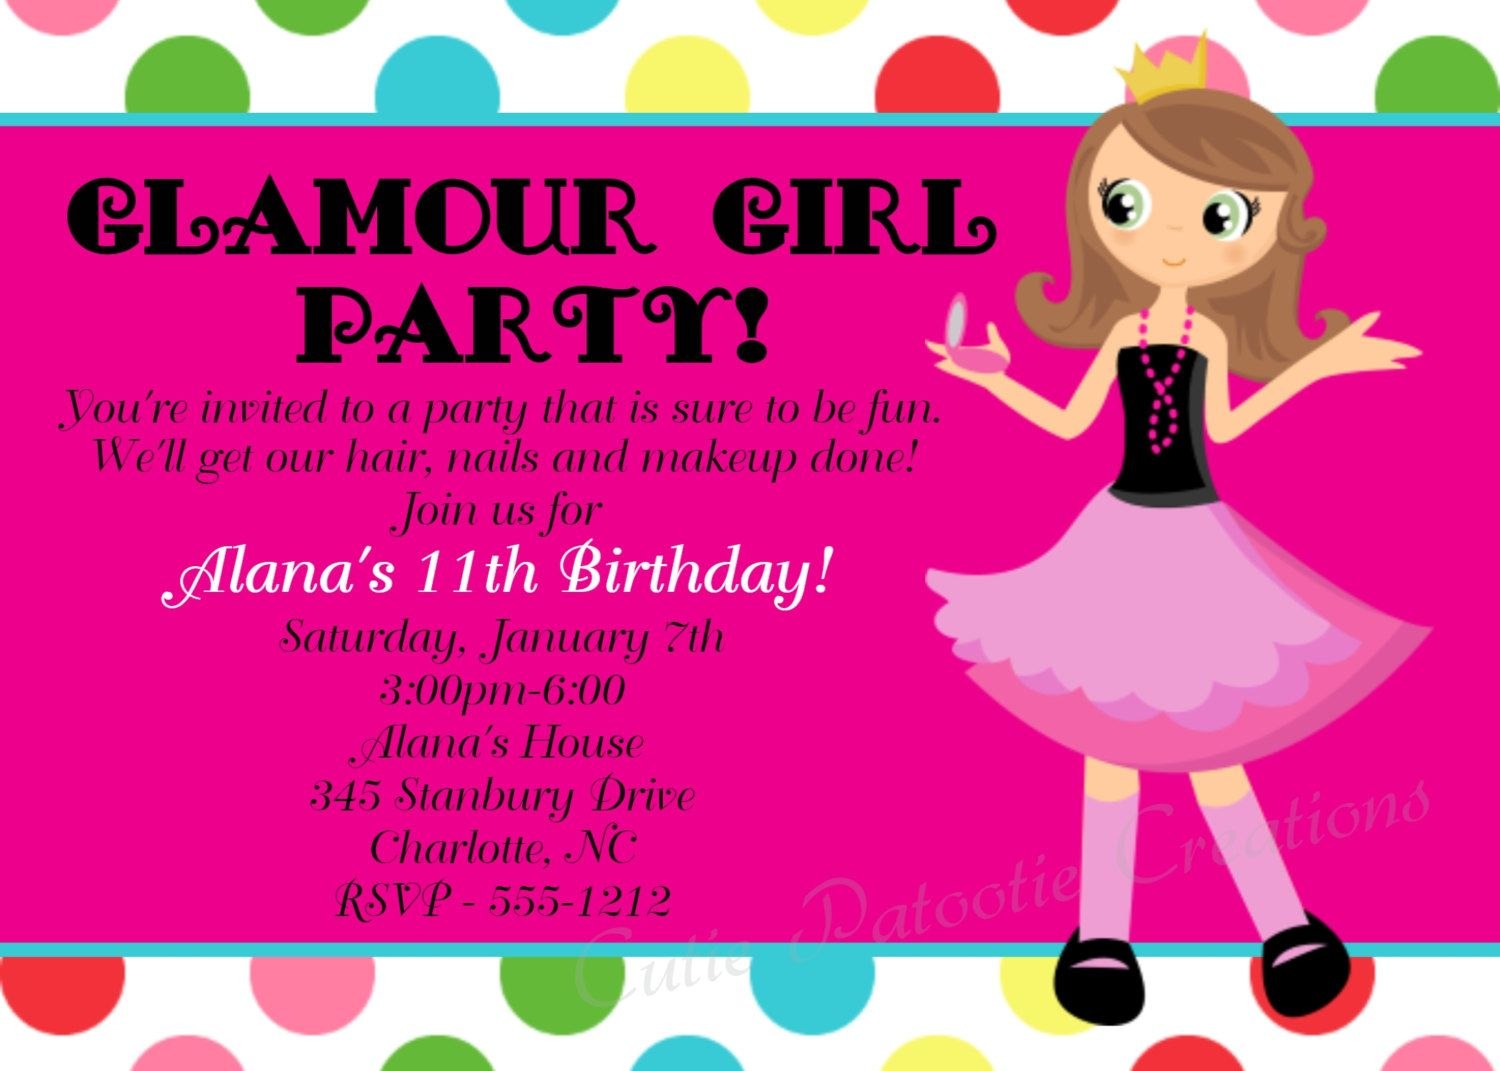 Glamour Girl party idea | Kids party ideas | Pinterest | Glamour ...